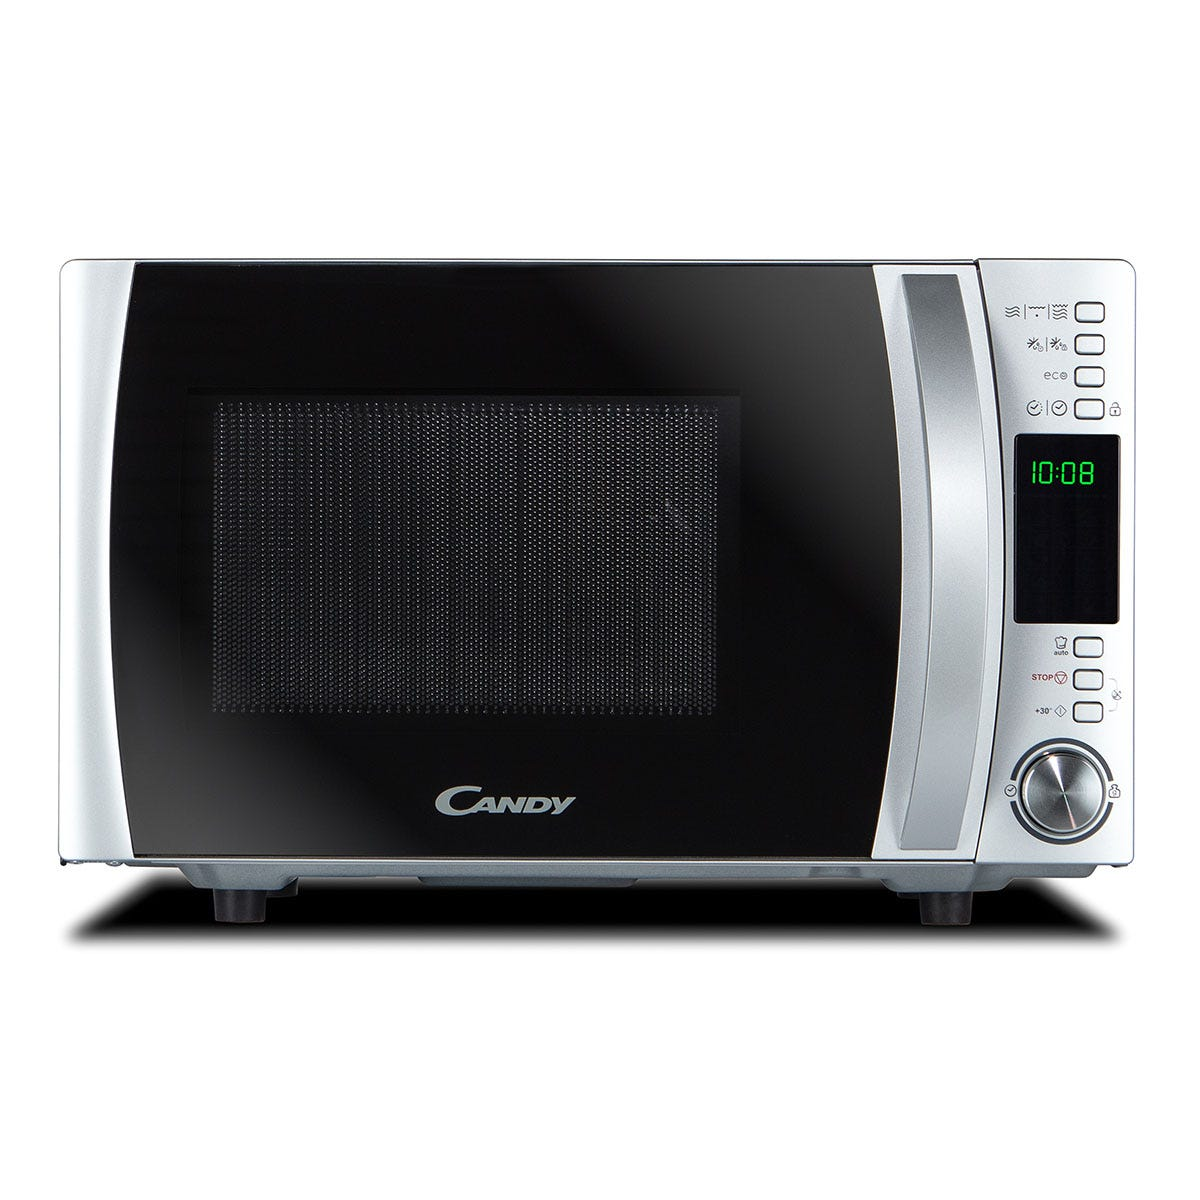 Candy CMXG25DCS 900W Freestanding Digital 25L Microwave and Grill - Silver